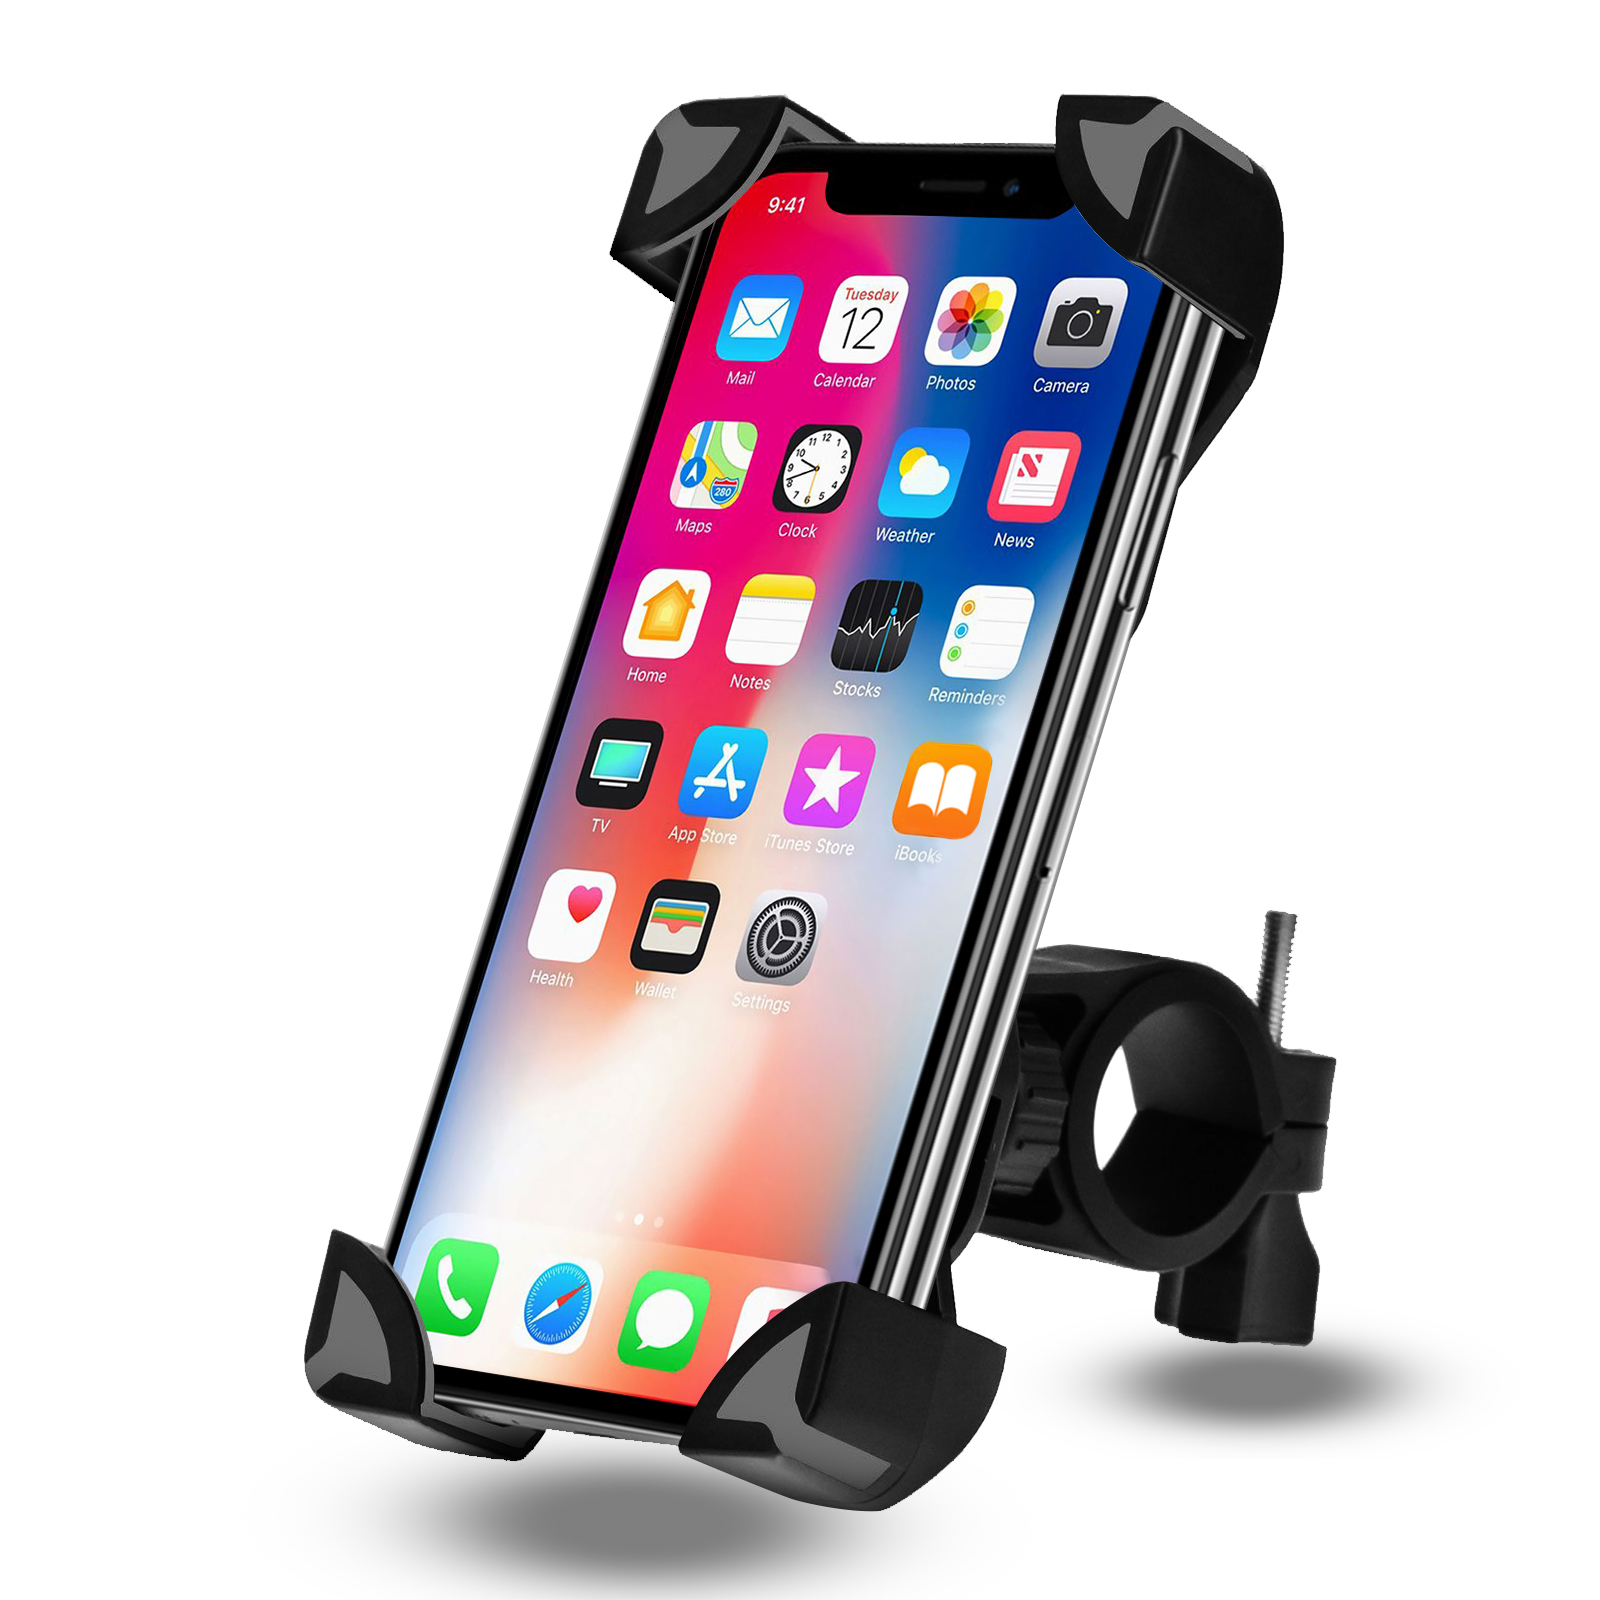 360/°Rotation Adjustable Bicycle Handlebar Rack Cellphone Holder Compatible iPhone 11 Pro Max SE X Xs Xr 8 7 6 Plus Samsung Galaxy S20 S10 S9 S8 S7 S6 S5 Edge Nexus Bike Motorcycle Phone Mount